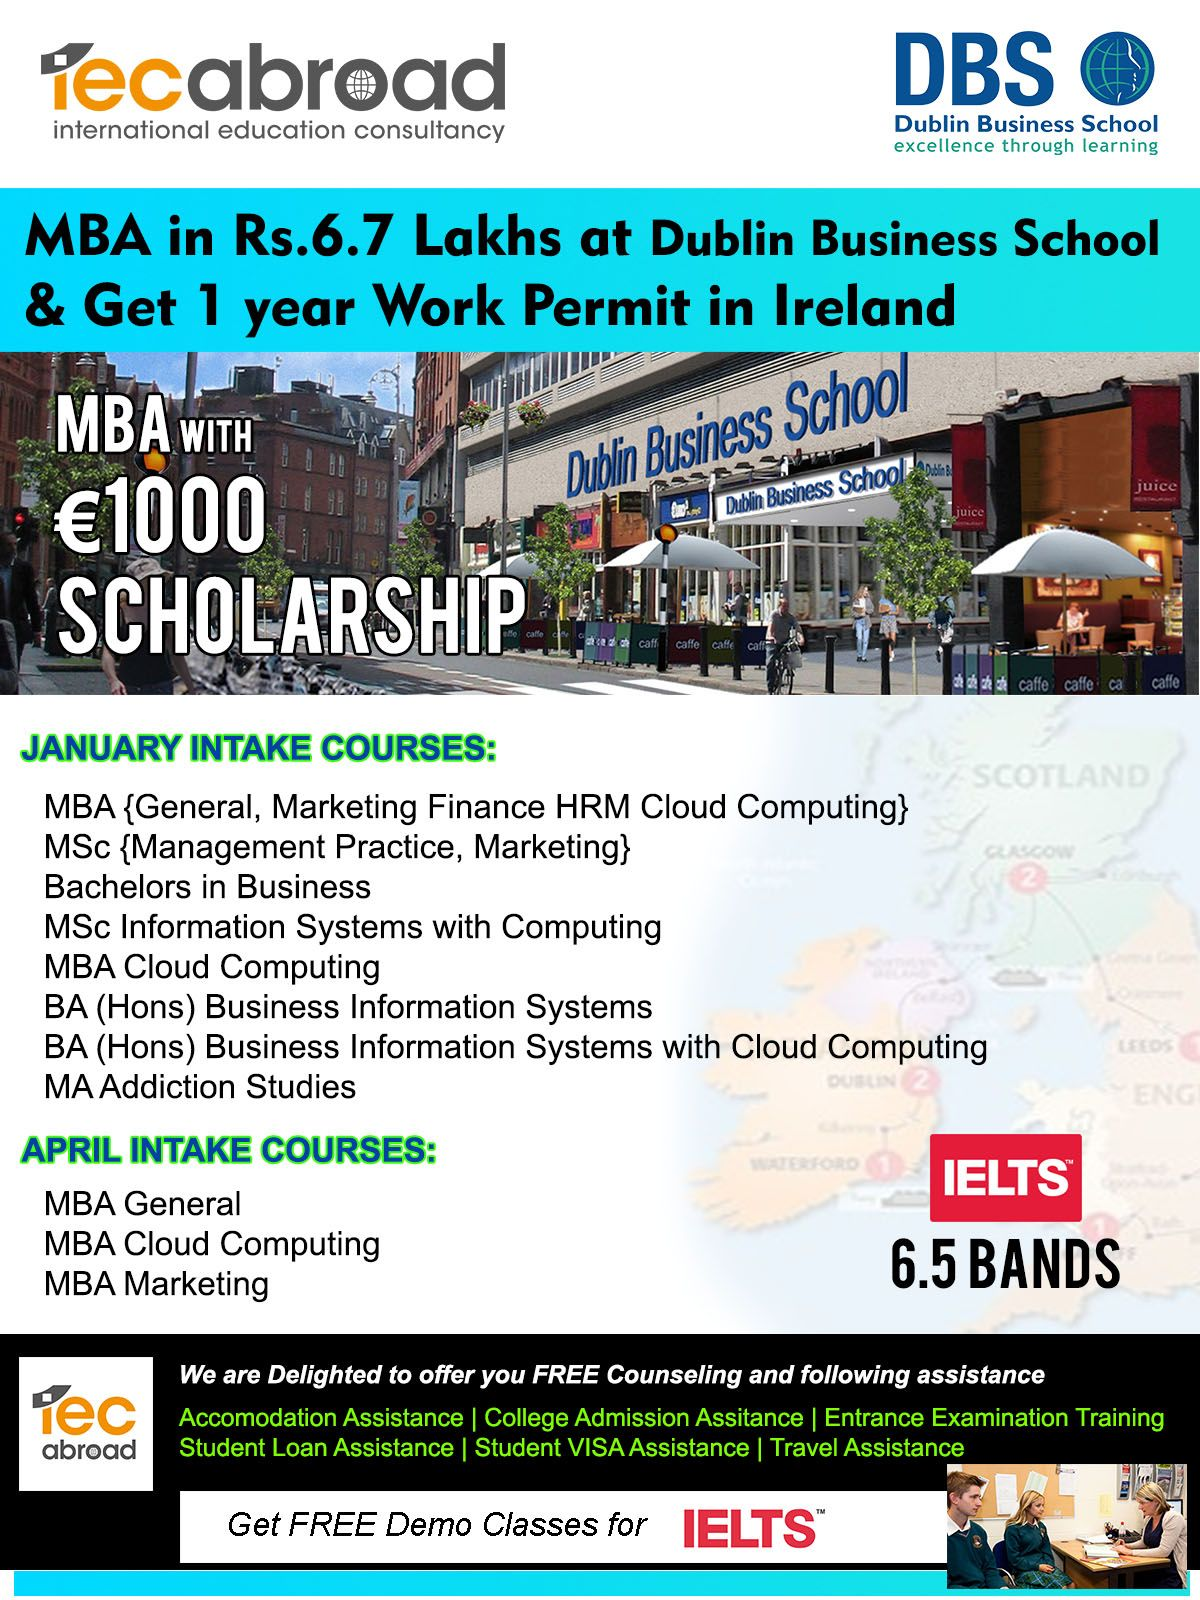 Mba In Rs 6 7 Lakhs At Dublin Business School Get 1 Year Work Permit In Ireland Iecabroad E School Scholarship International Education Business School